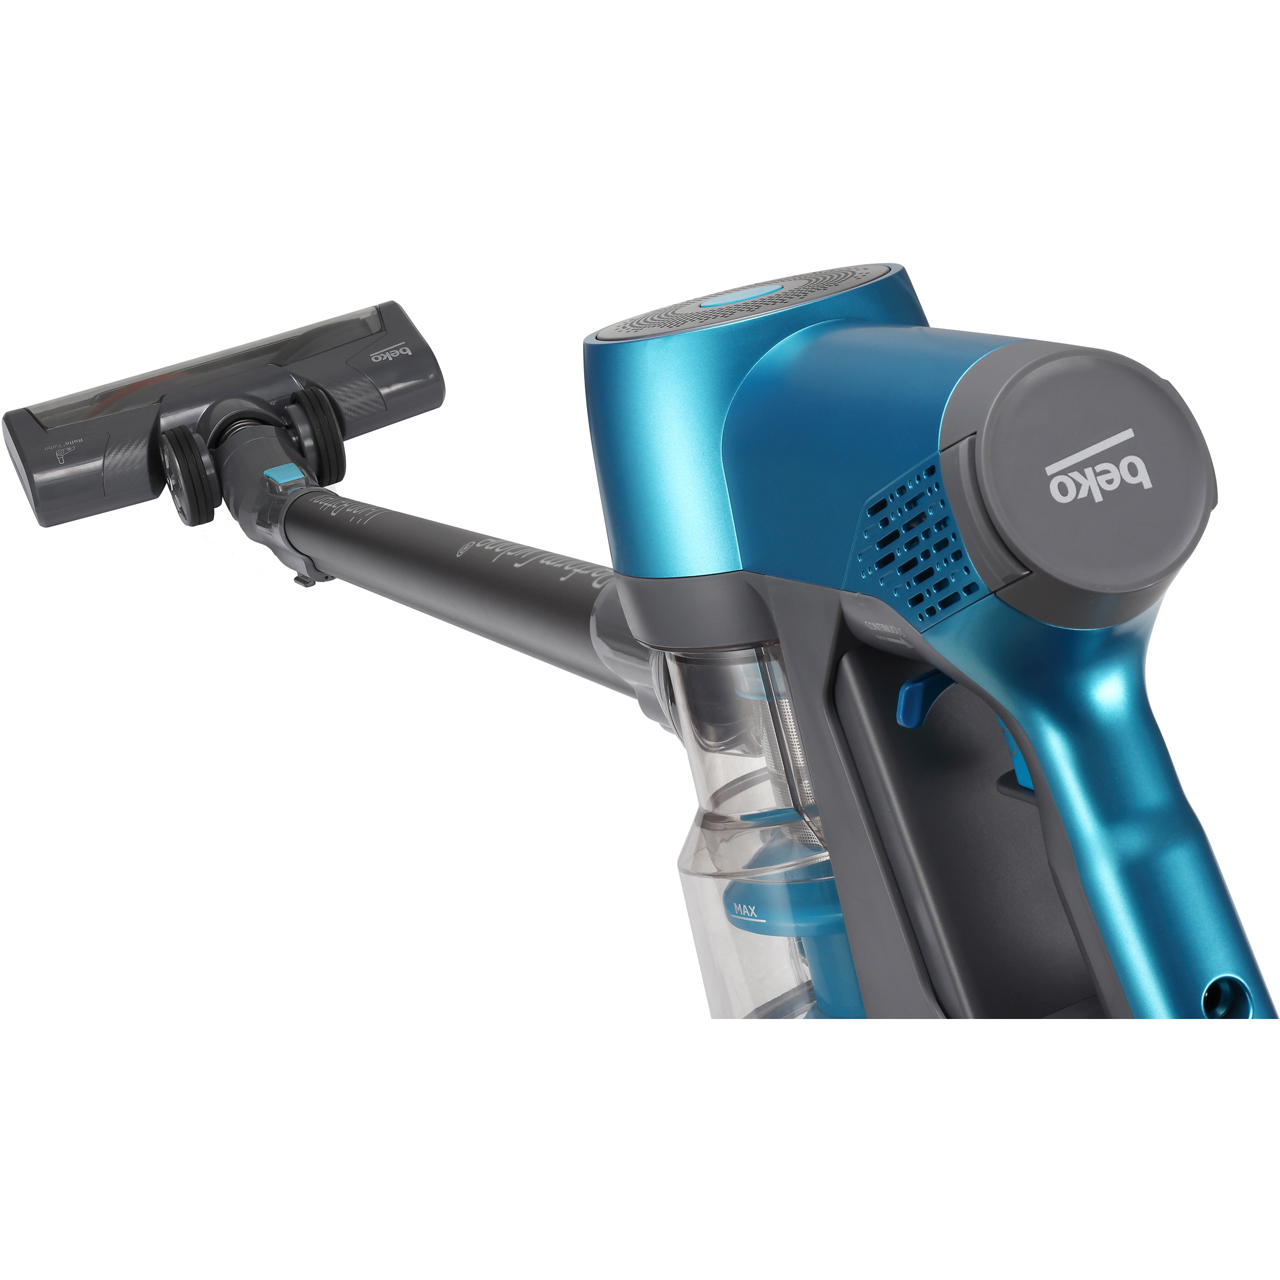 Beko VRT82821DV Cordless Vacuum Cleaner with up to 40 Minutes Run Time